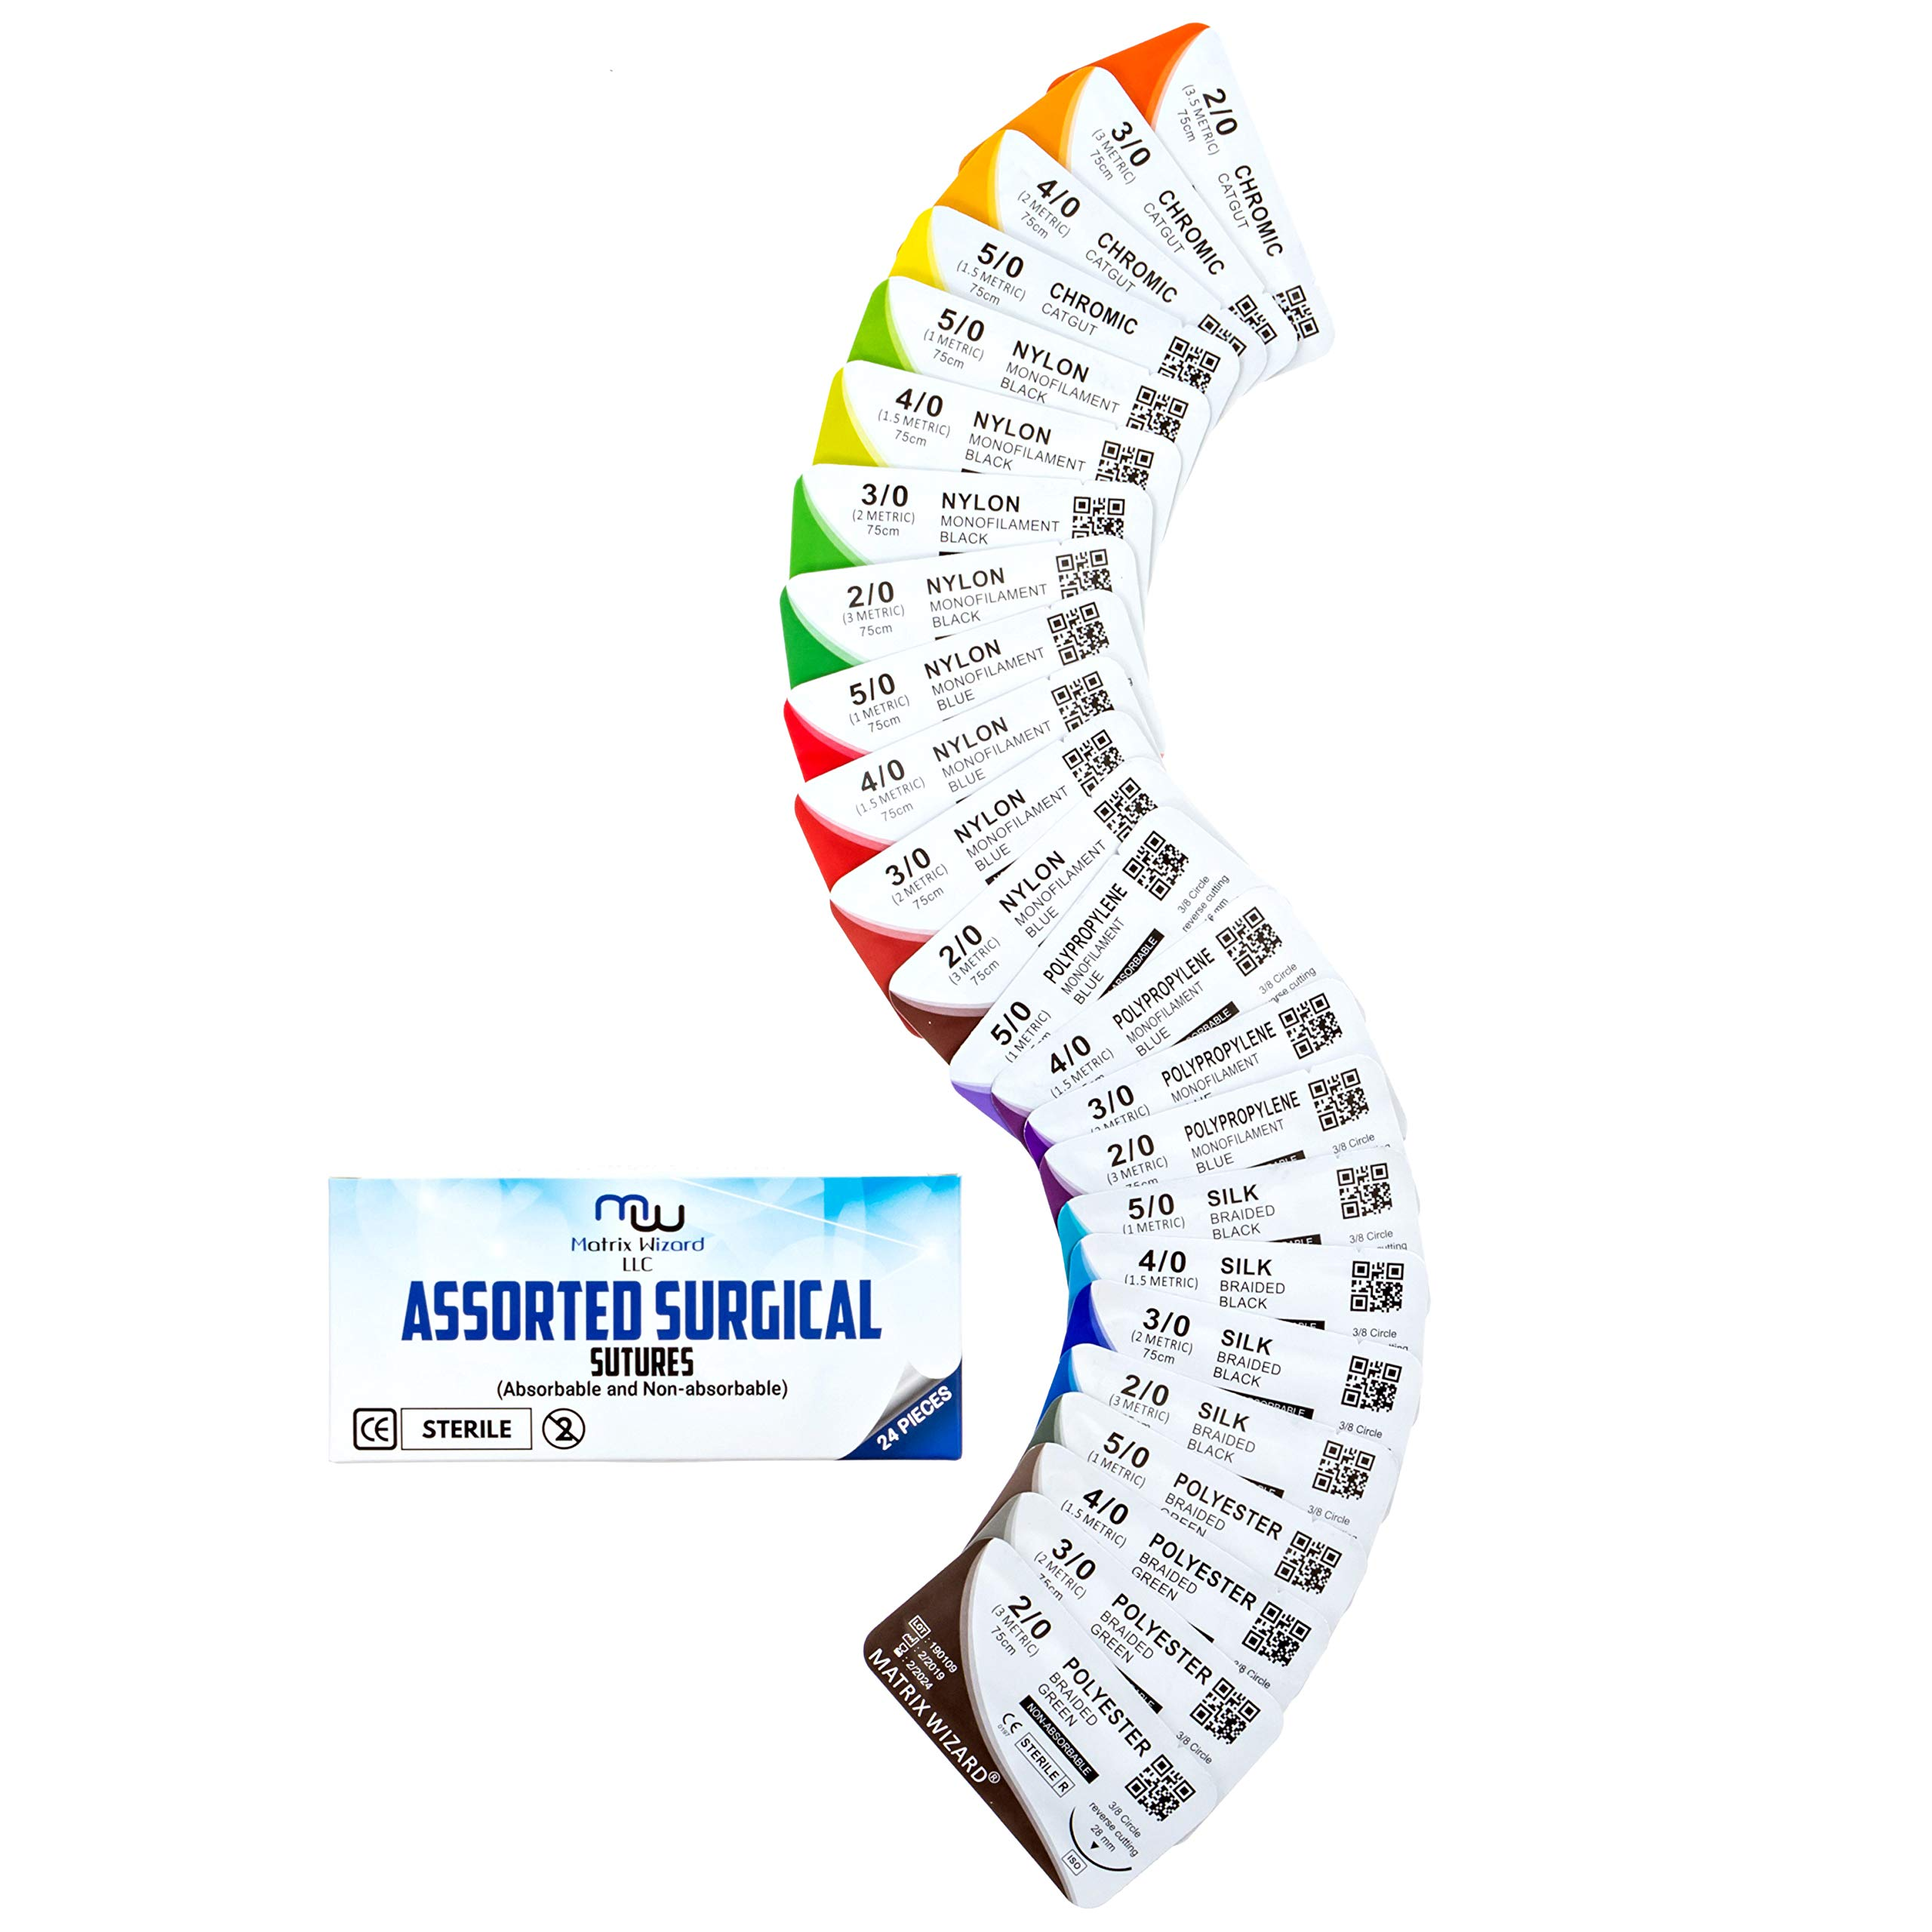 Mixed Sutures Thread with Needle (Absorbable: Chromic Catgut; Non-Absorbable: Nylon, Silk, Polyester, Polypropylene) - Surgical Wound Practice Kit, Emergency First Aid Demo (2-0, 3-0, 4-0, 5-0) 24Pk by Matrix Wizard (Image #10)